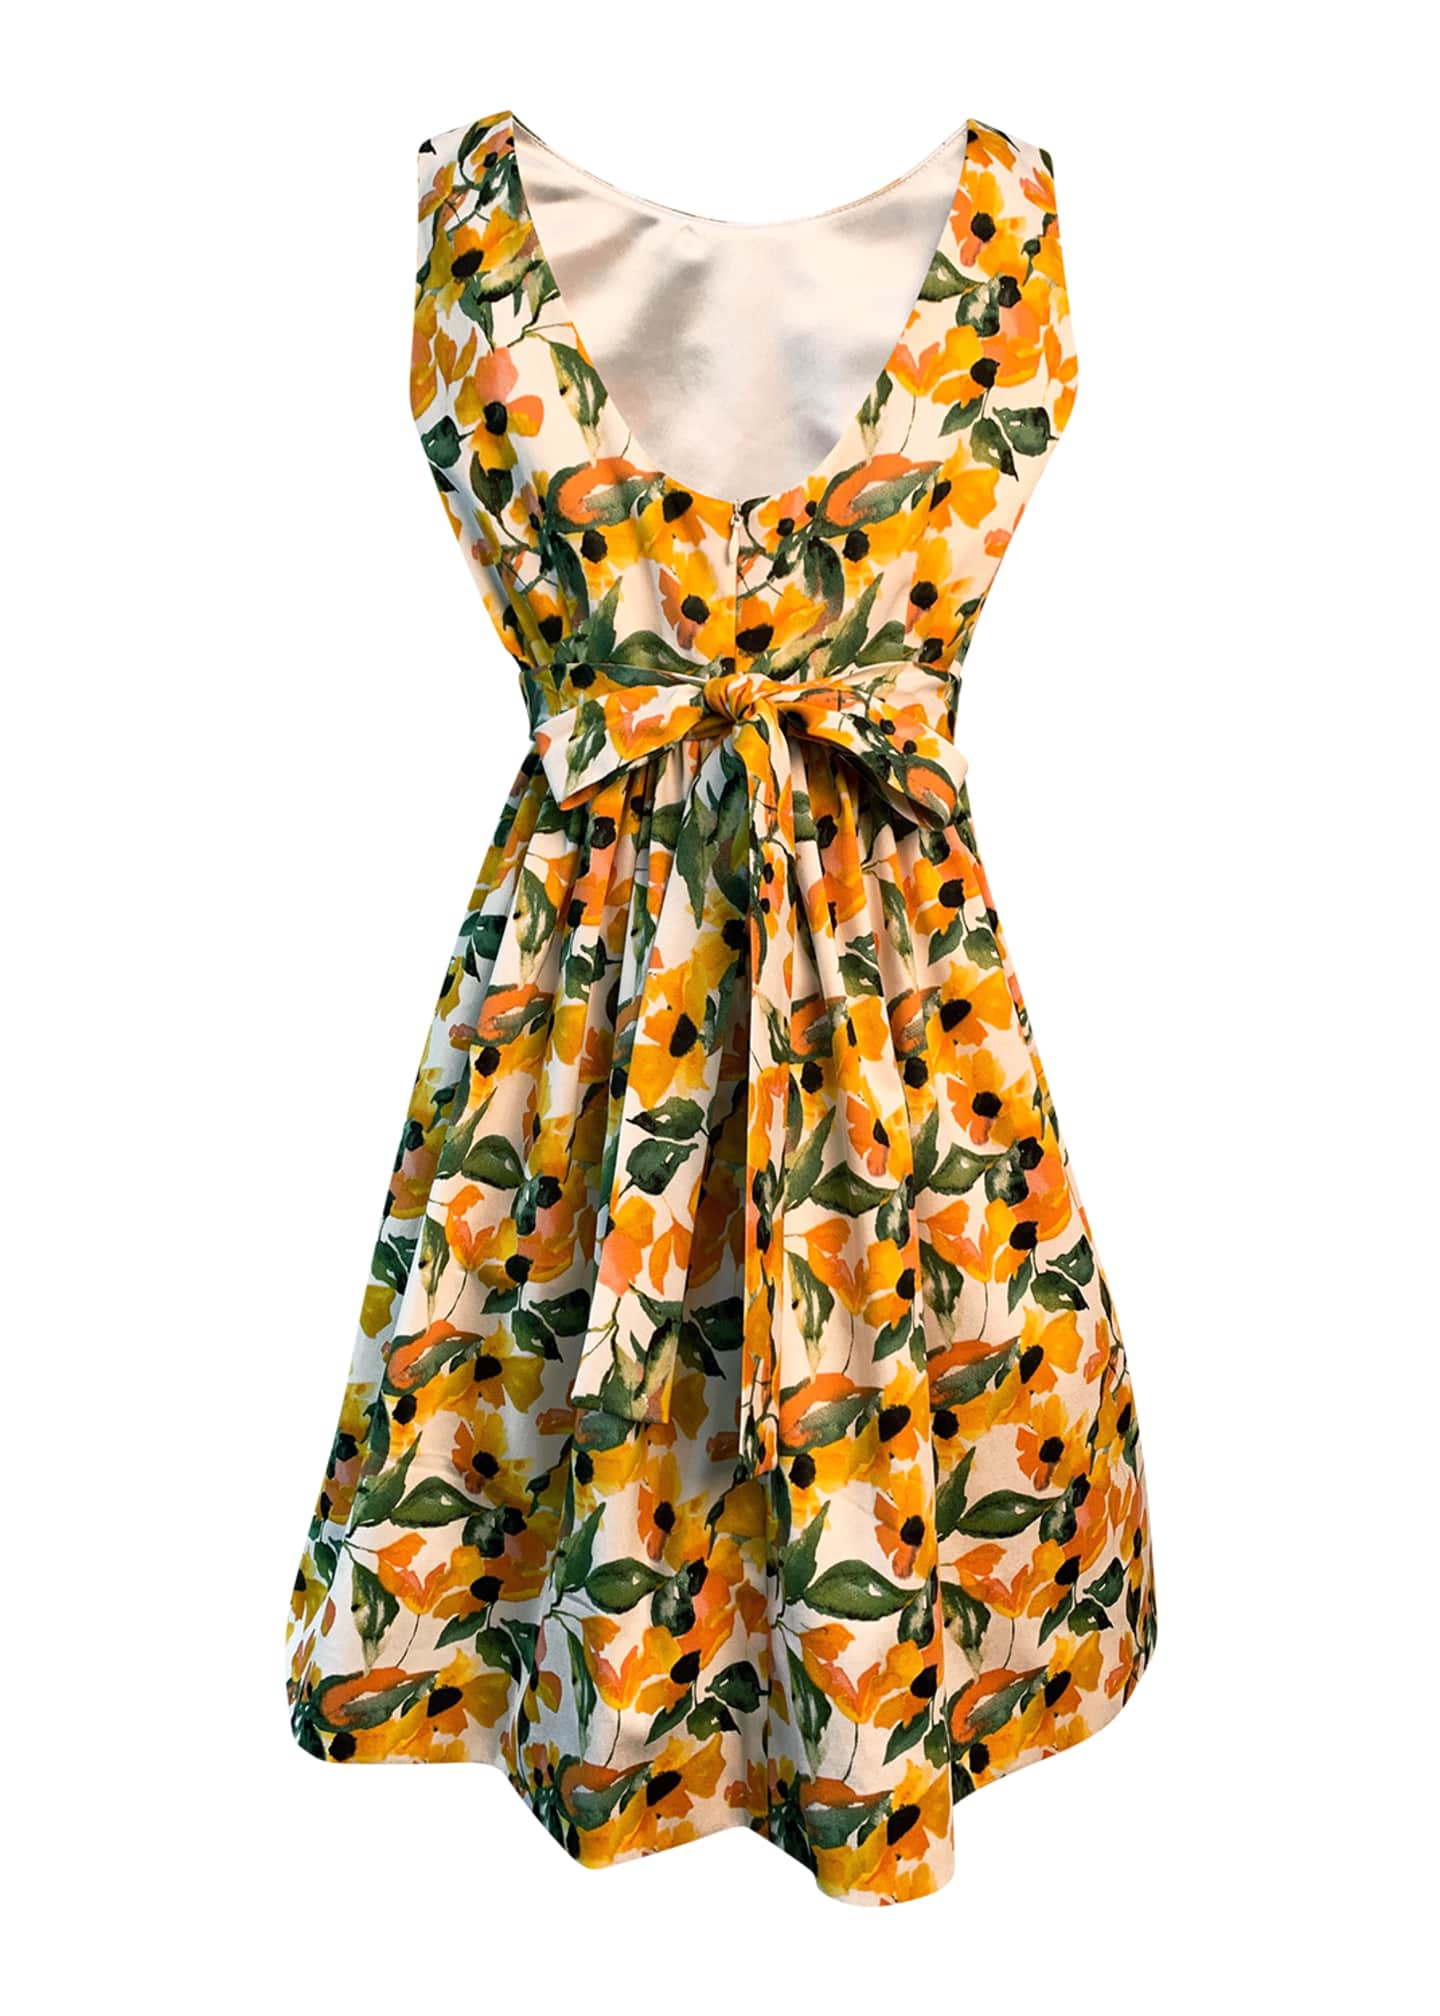 Image 2 of 2: Girl's Floral Print Sleeveless Dress, Size 4-6